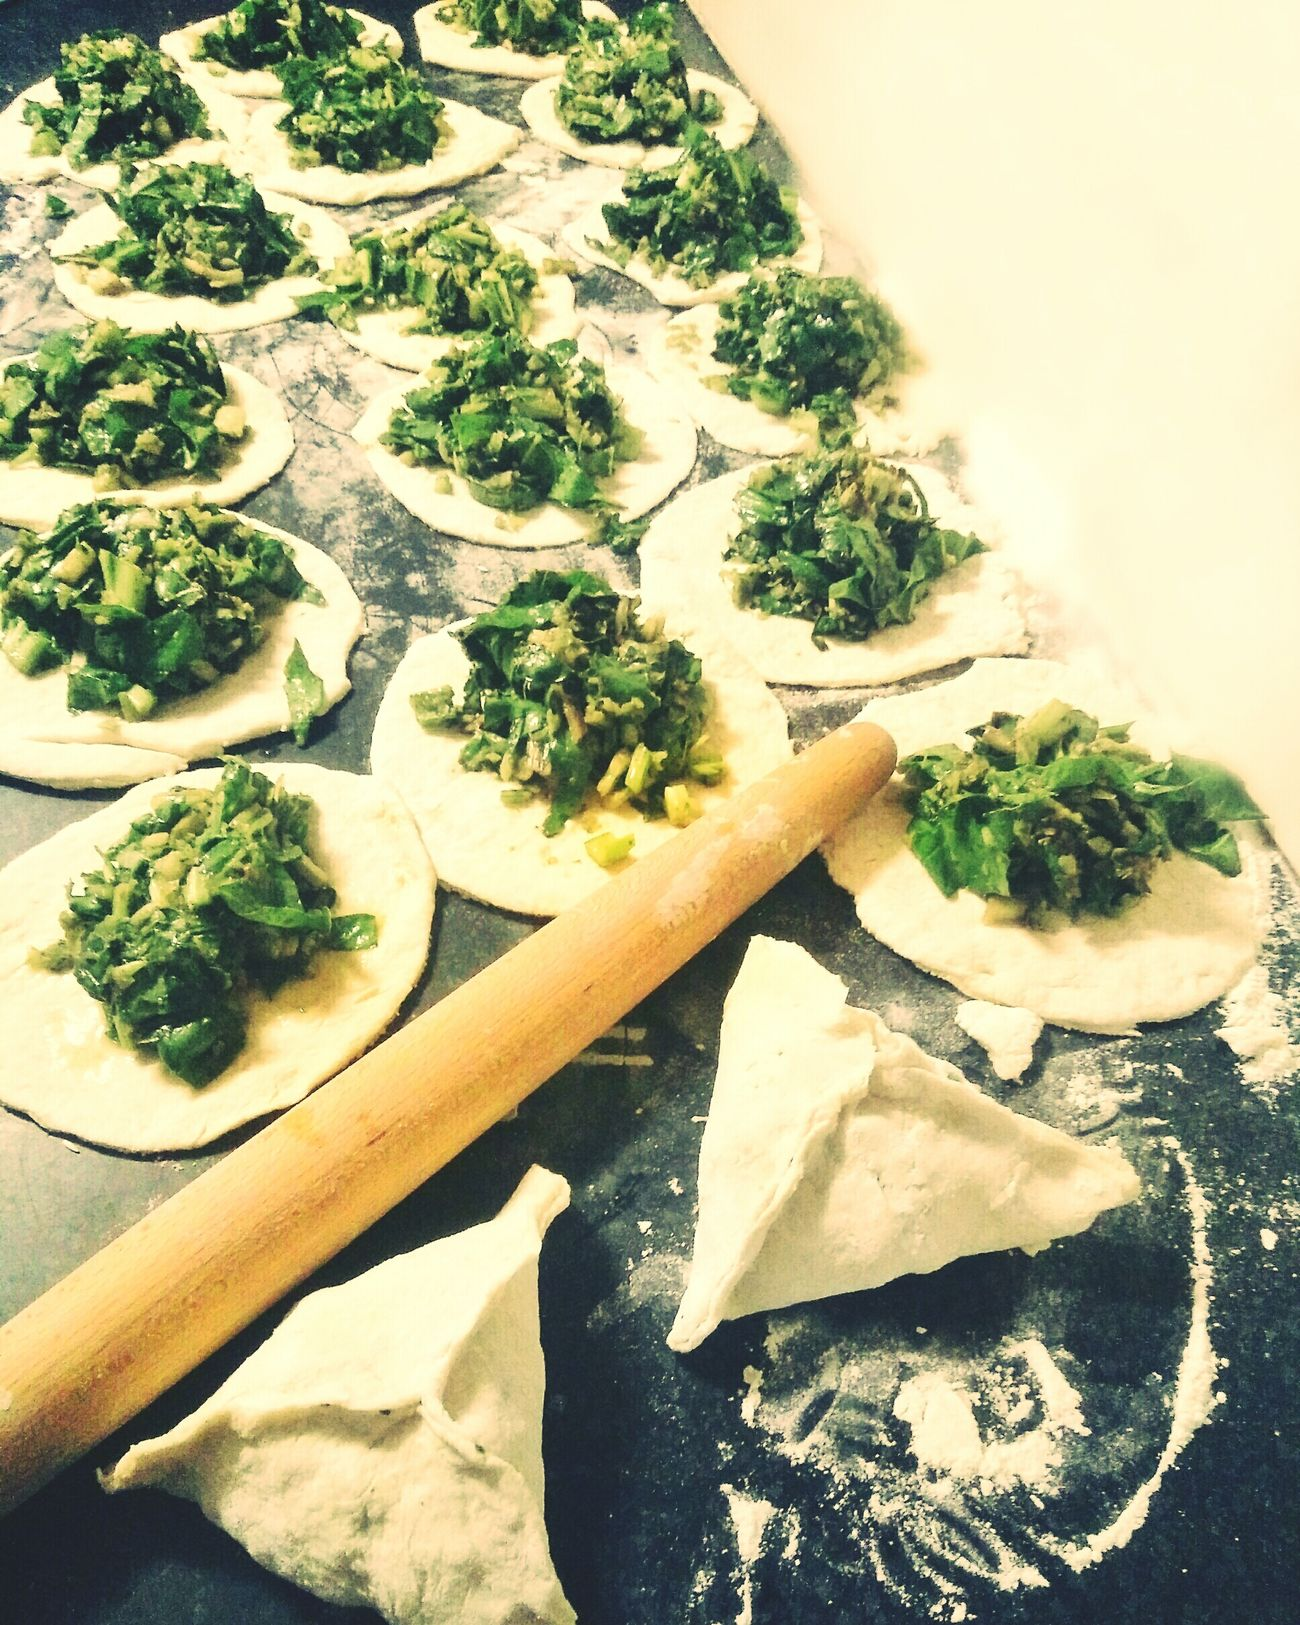 Spinach Pie Pastries Pastrychef Flour Tasty Food Eat Healthy Food Helthyeating